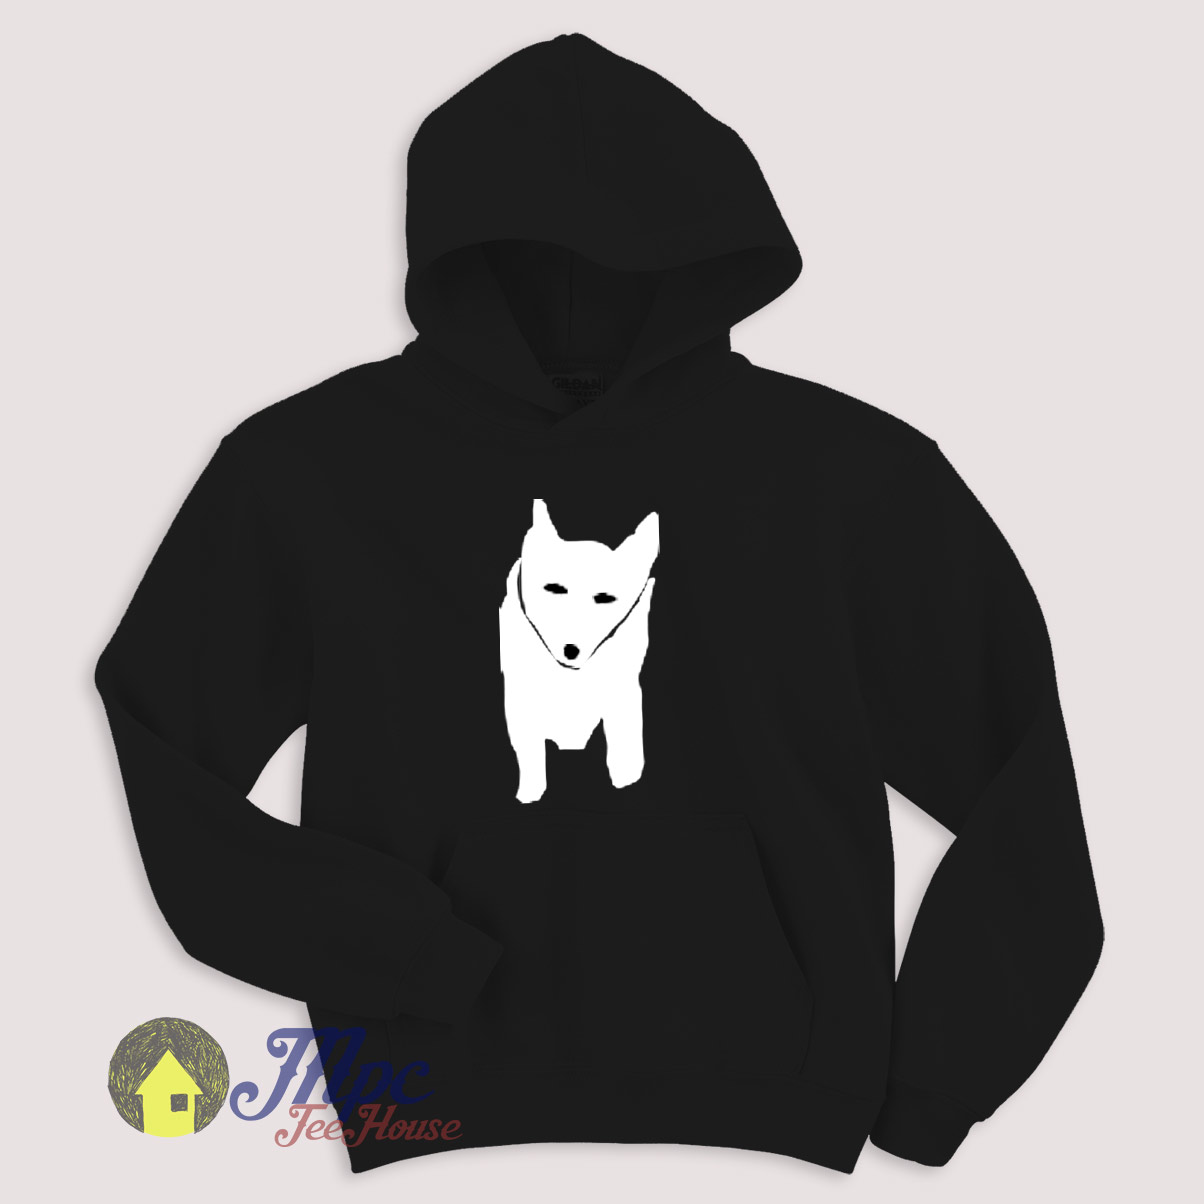 Funny Dog Pewdiepie Hoodie Size S Xxl Mpcteehouse 80s Tees